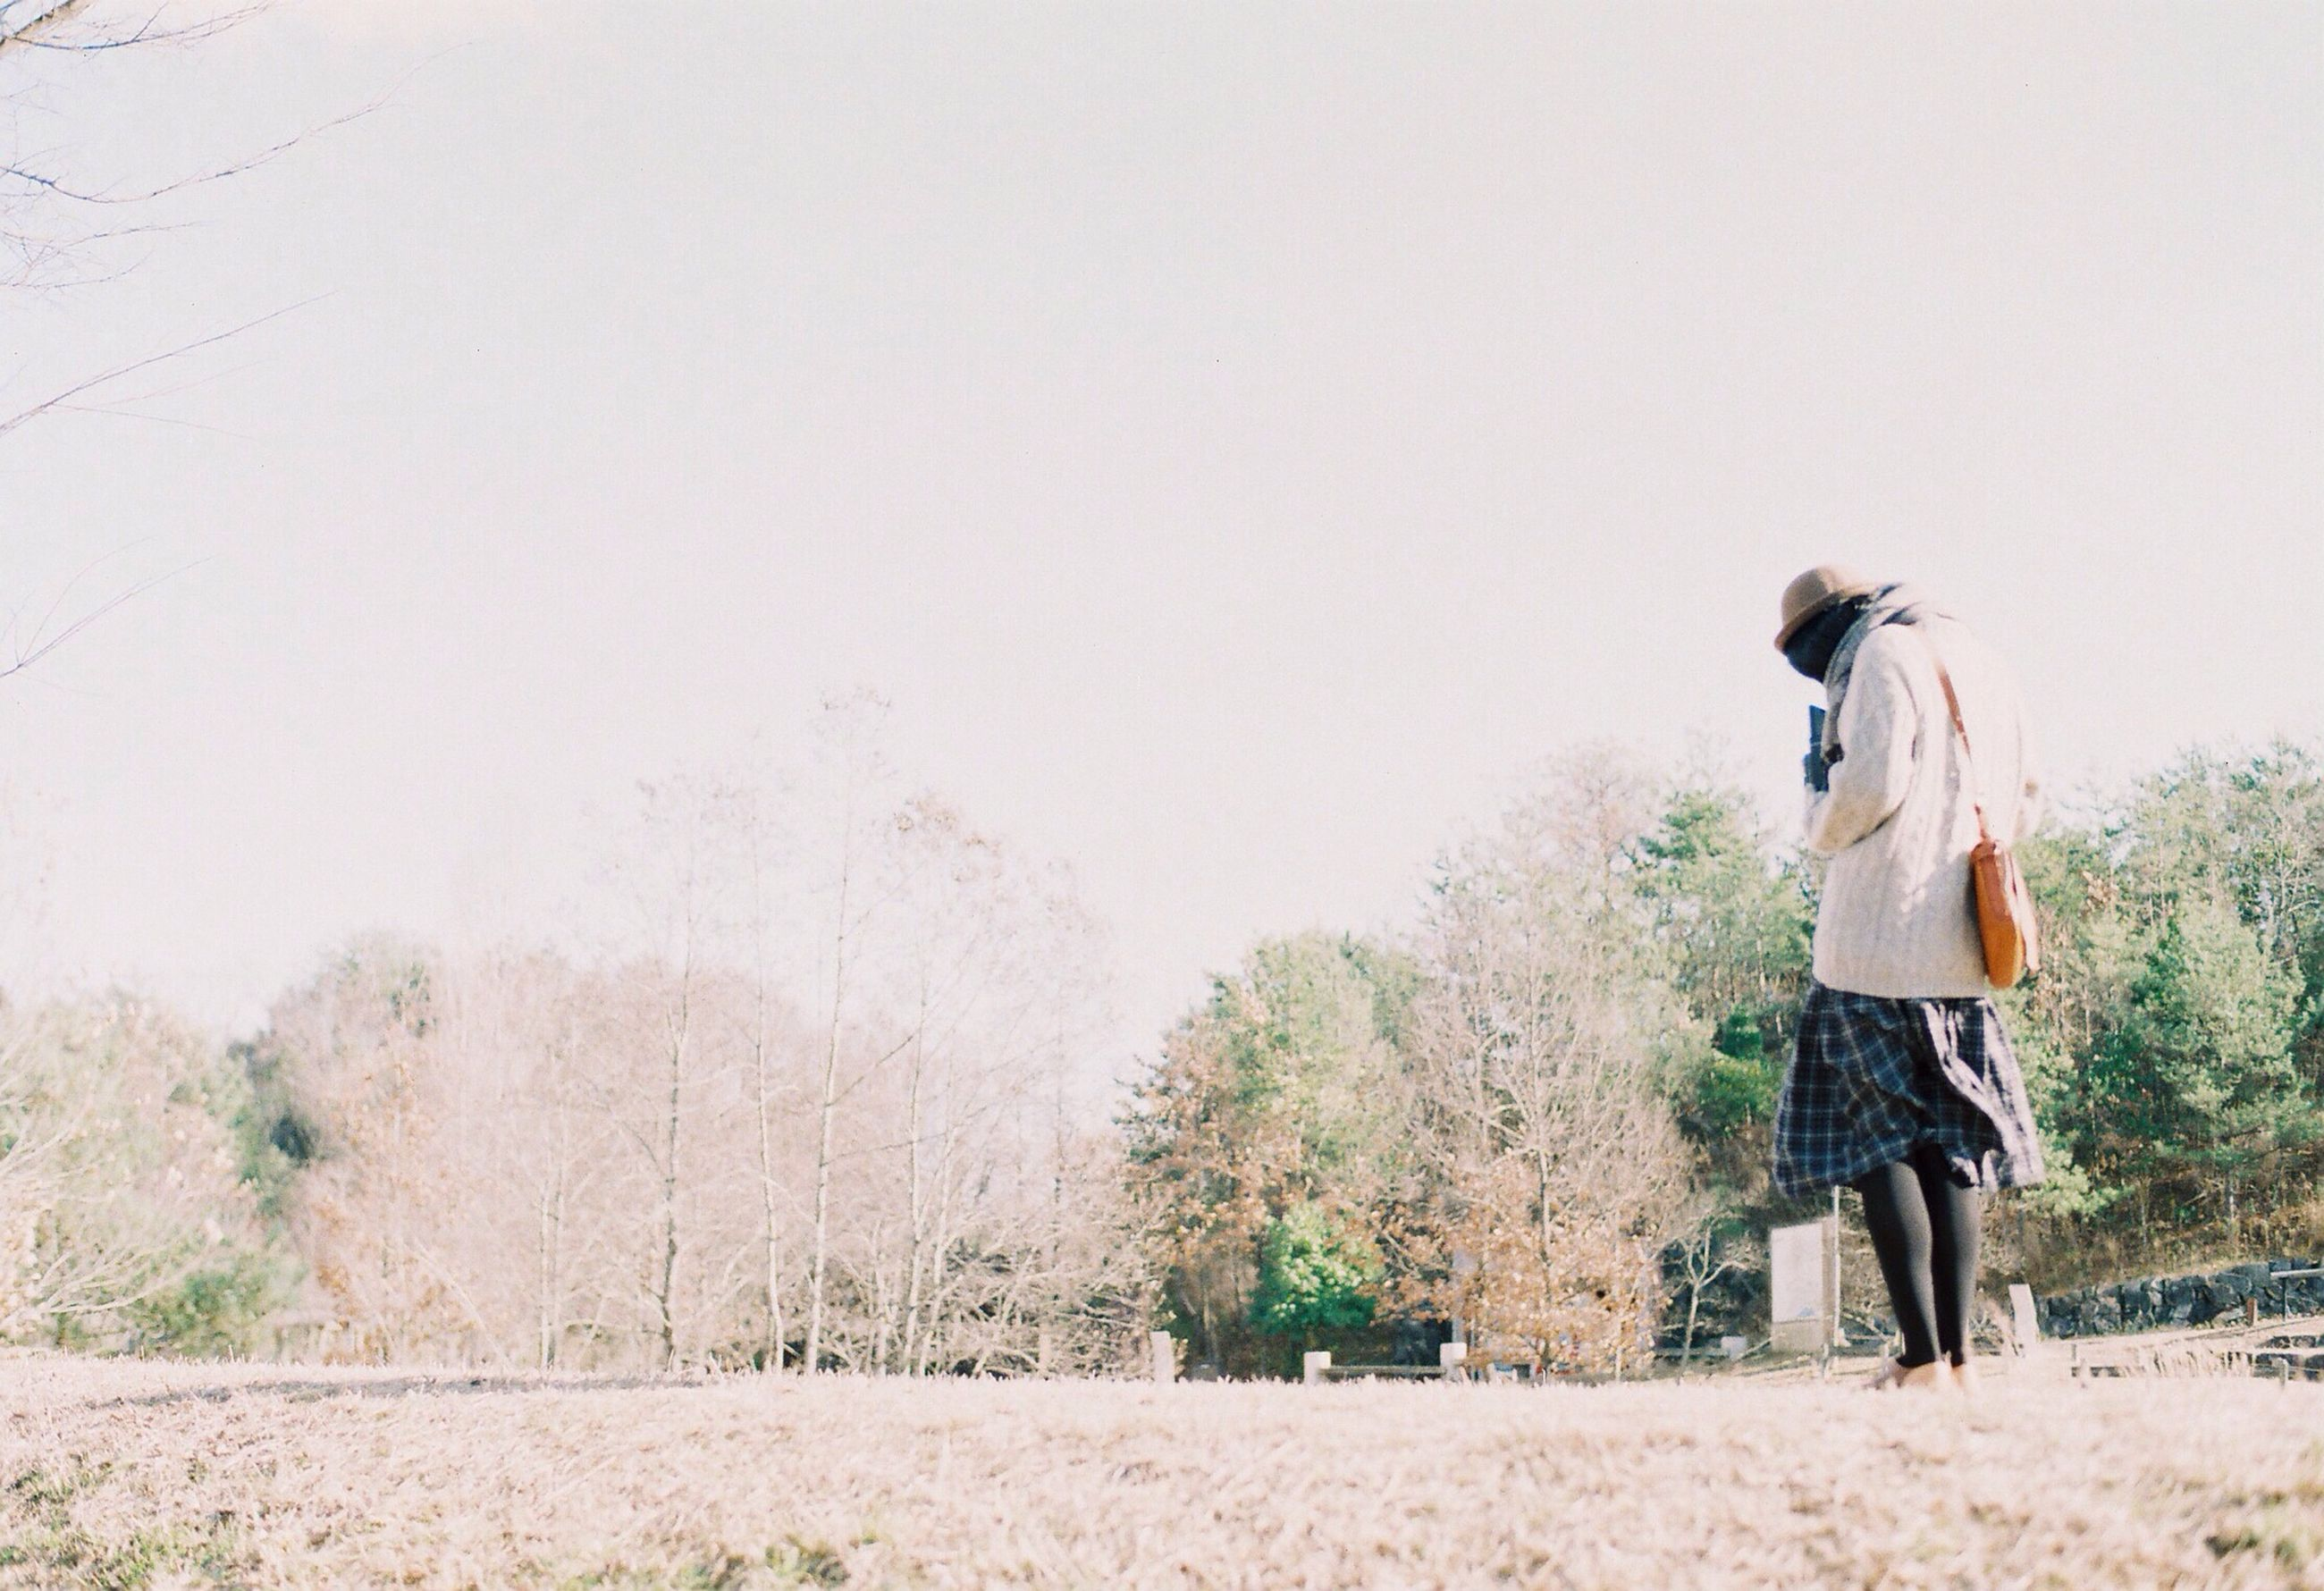 lifestyles, leisure activity, full length, casual clothing, rear view, tree, standing, clear sky, men, copy space, nature, tranquility, tranquil scene, walking, person, landscape, day